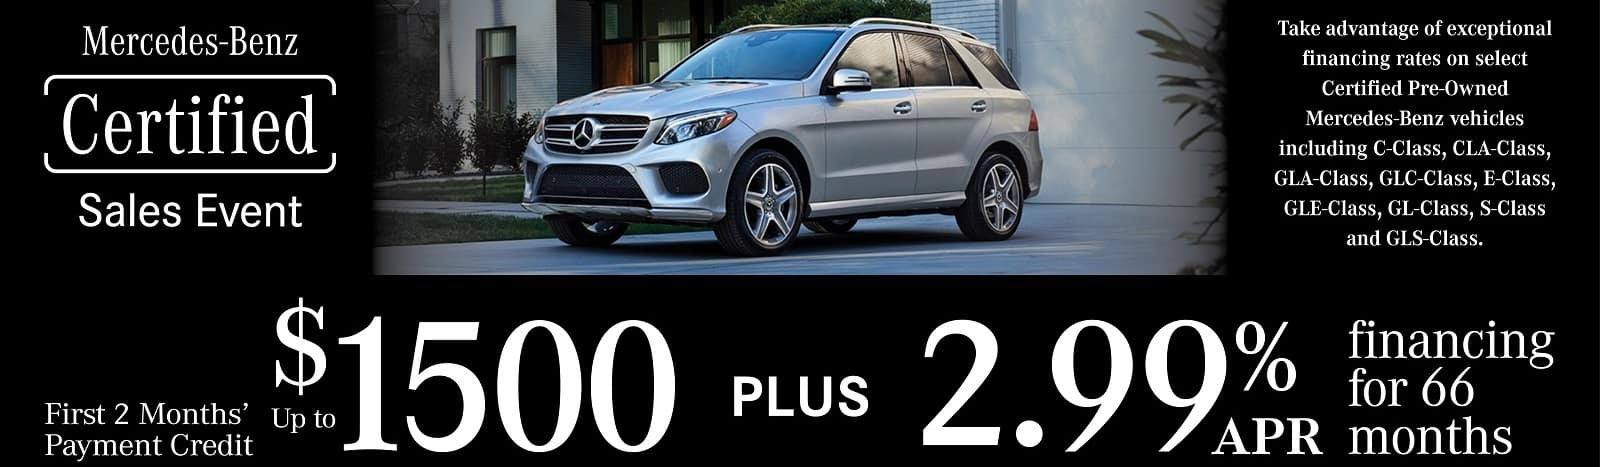 Mercedes-Benz PreOwned Lease Special